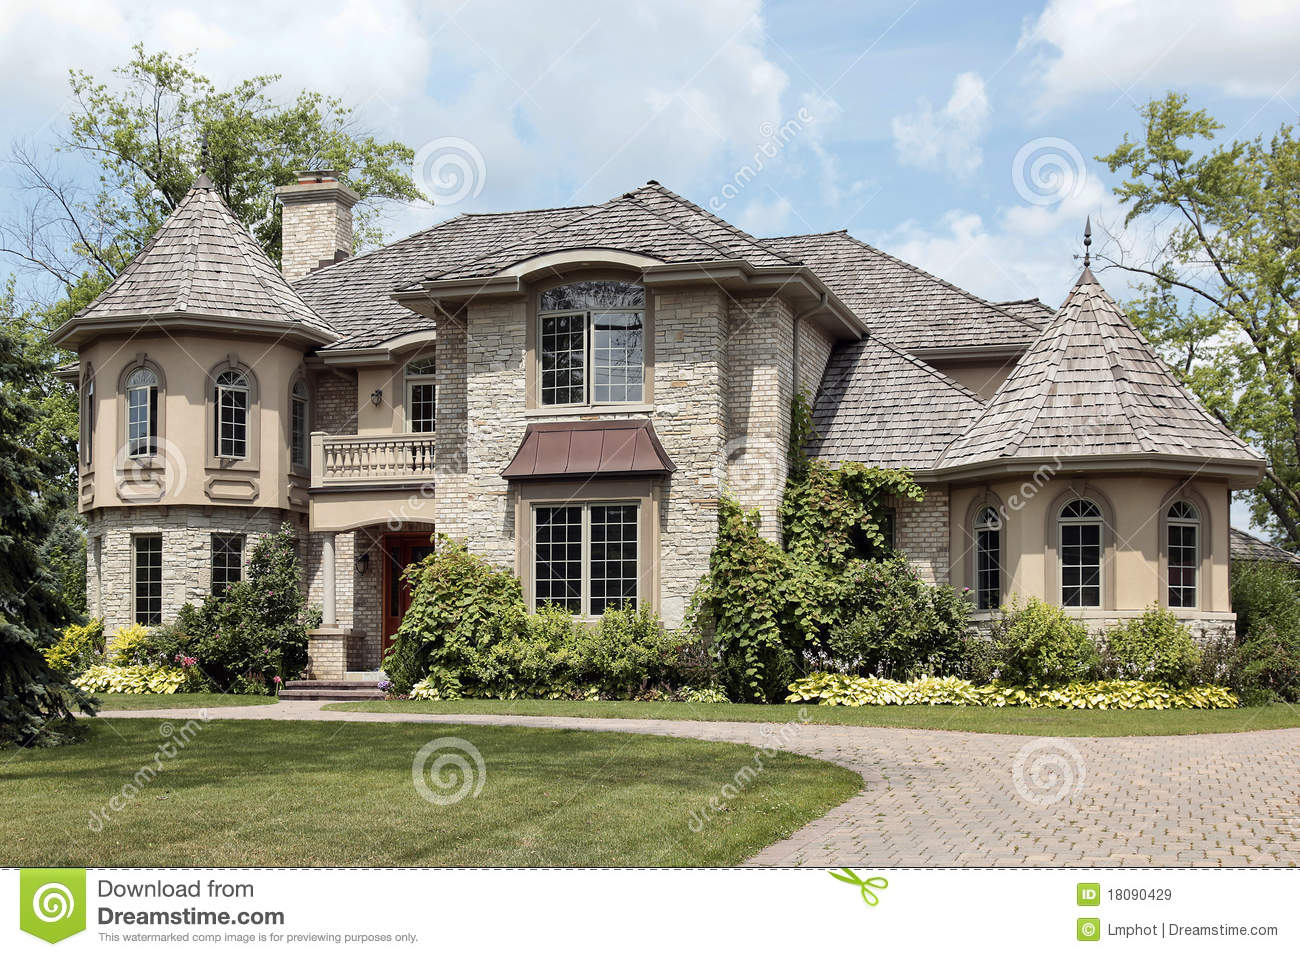 Luxury stone home with turret royalty free stock images for Villa de luxe contemporaine